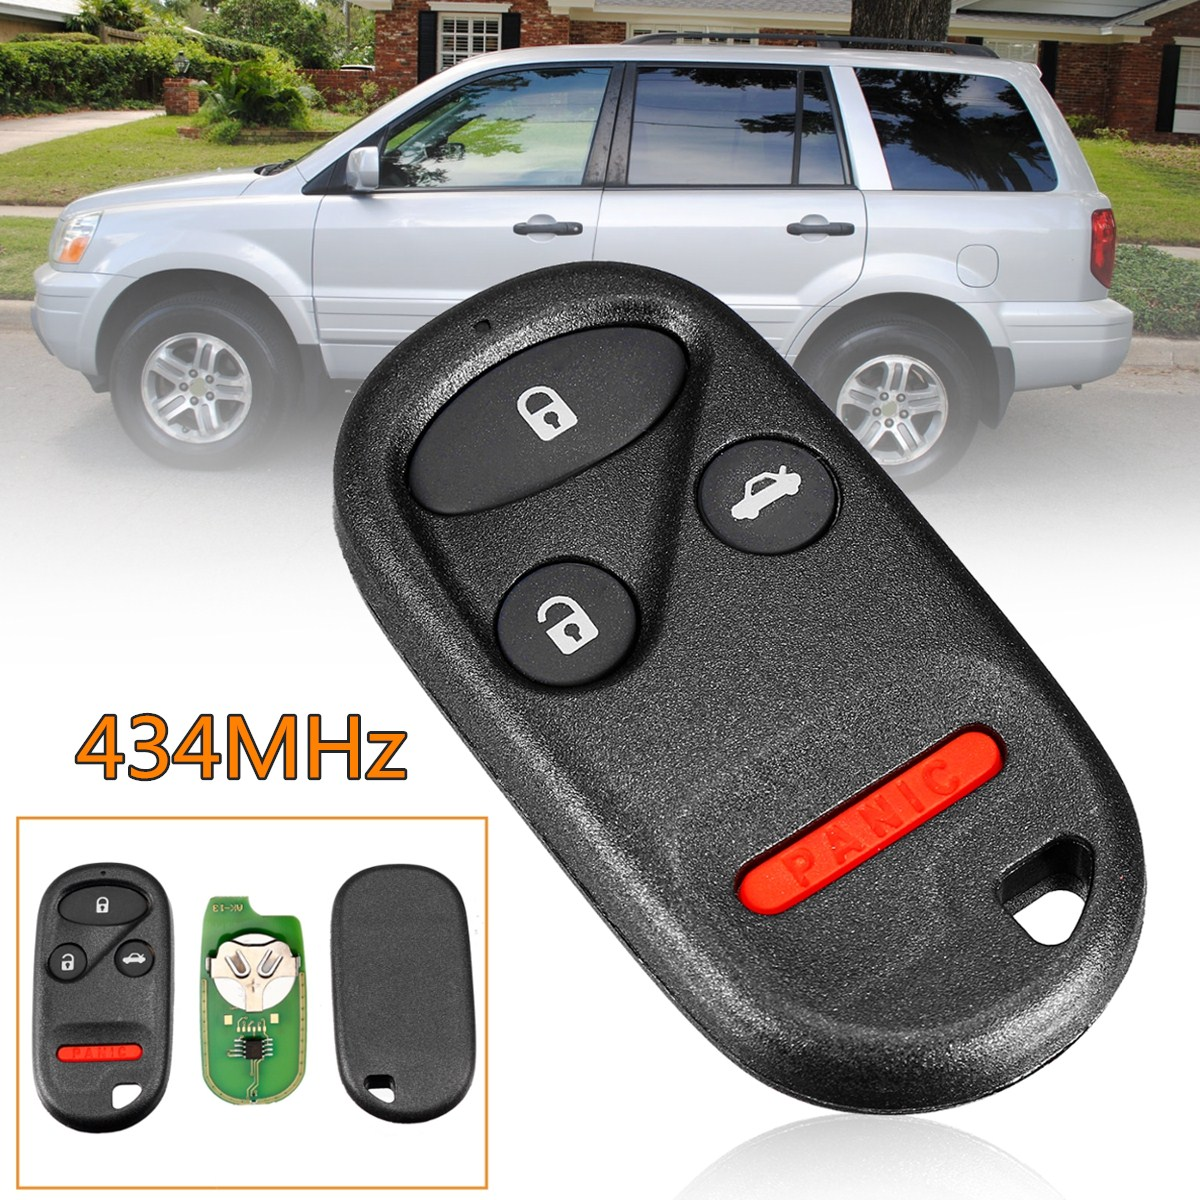 434MHz 4 Buttons Remote Key Fob Case Shell&Battery for Honda Civic Accord